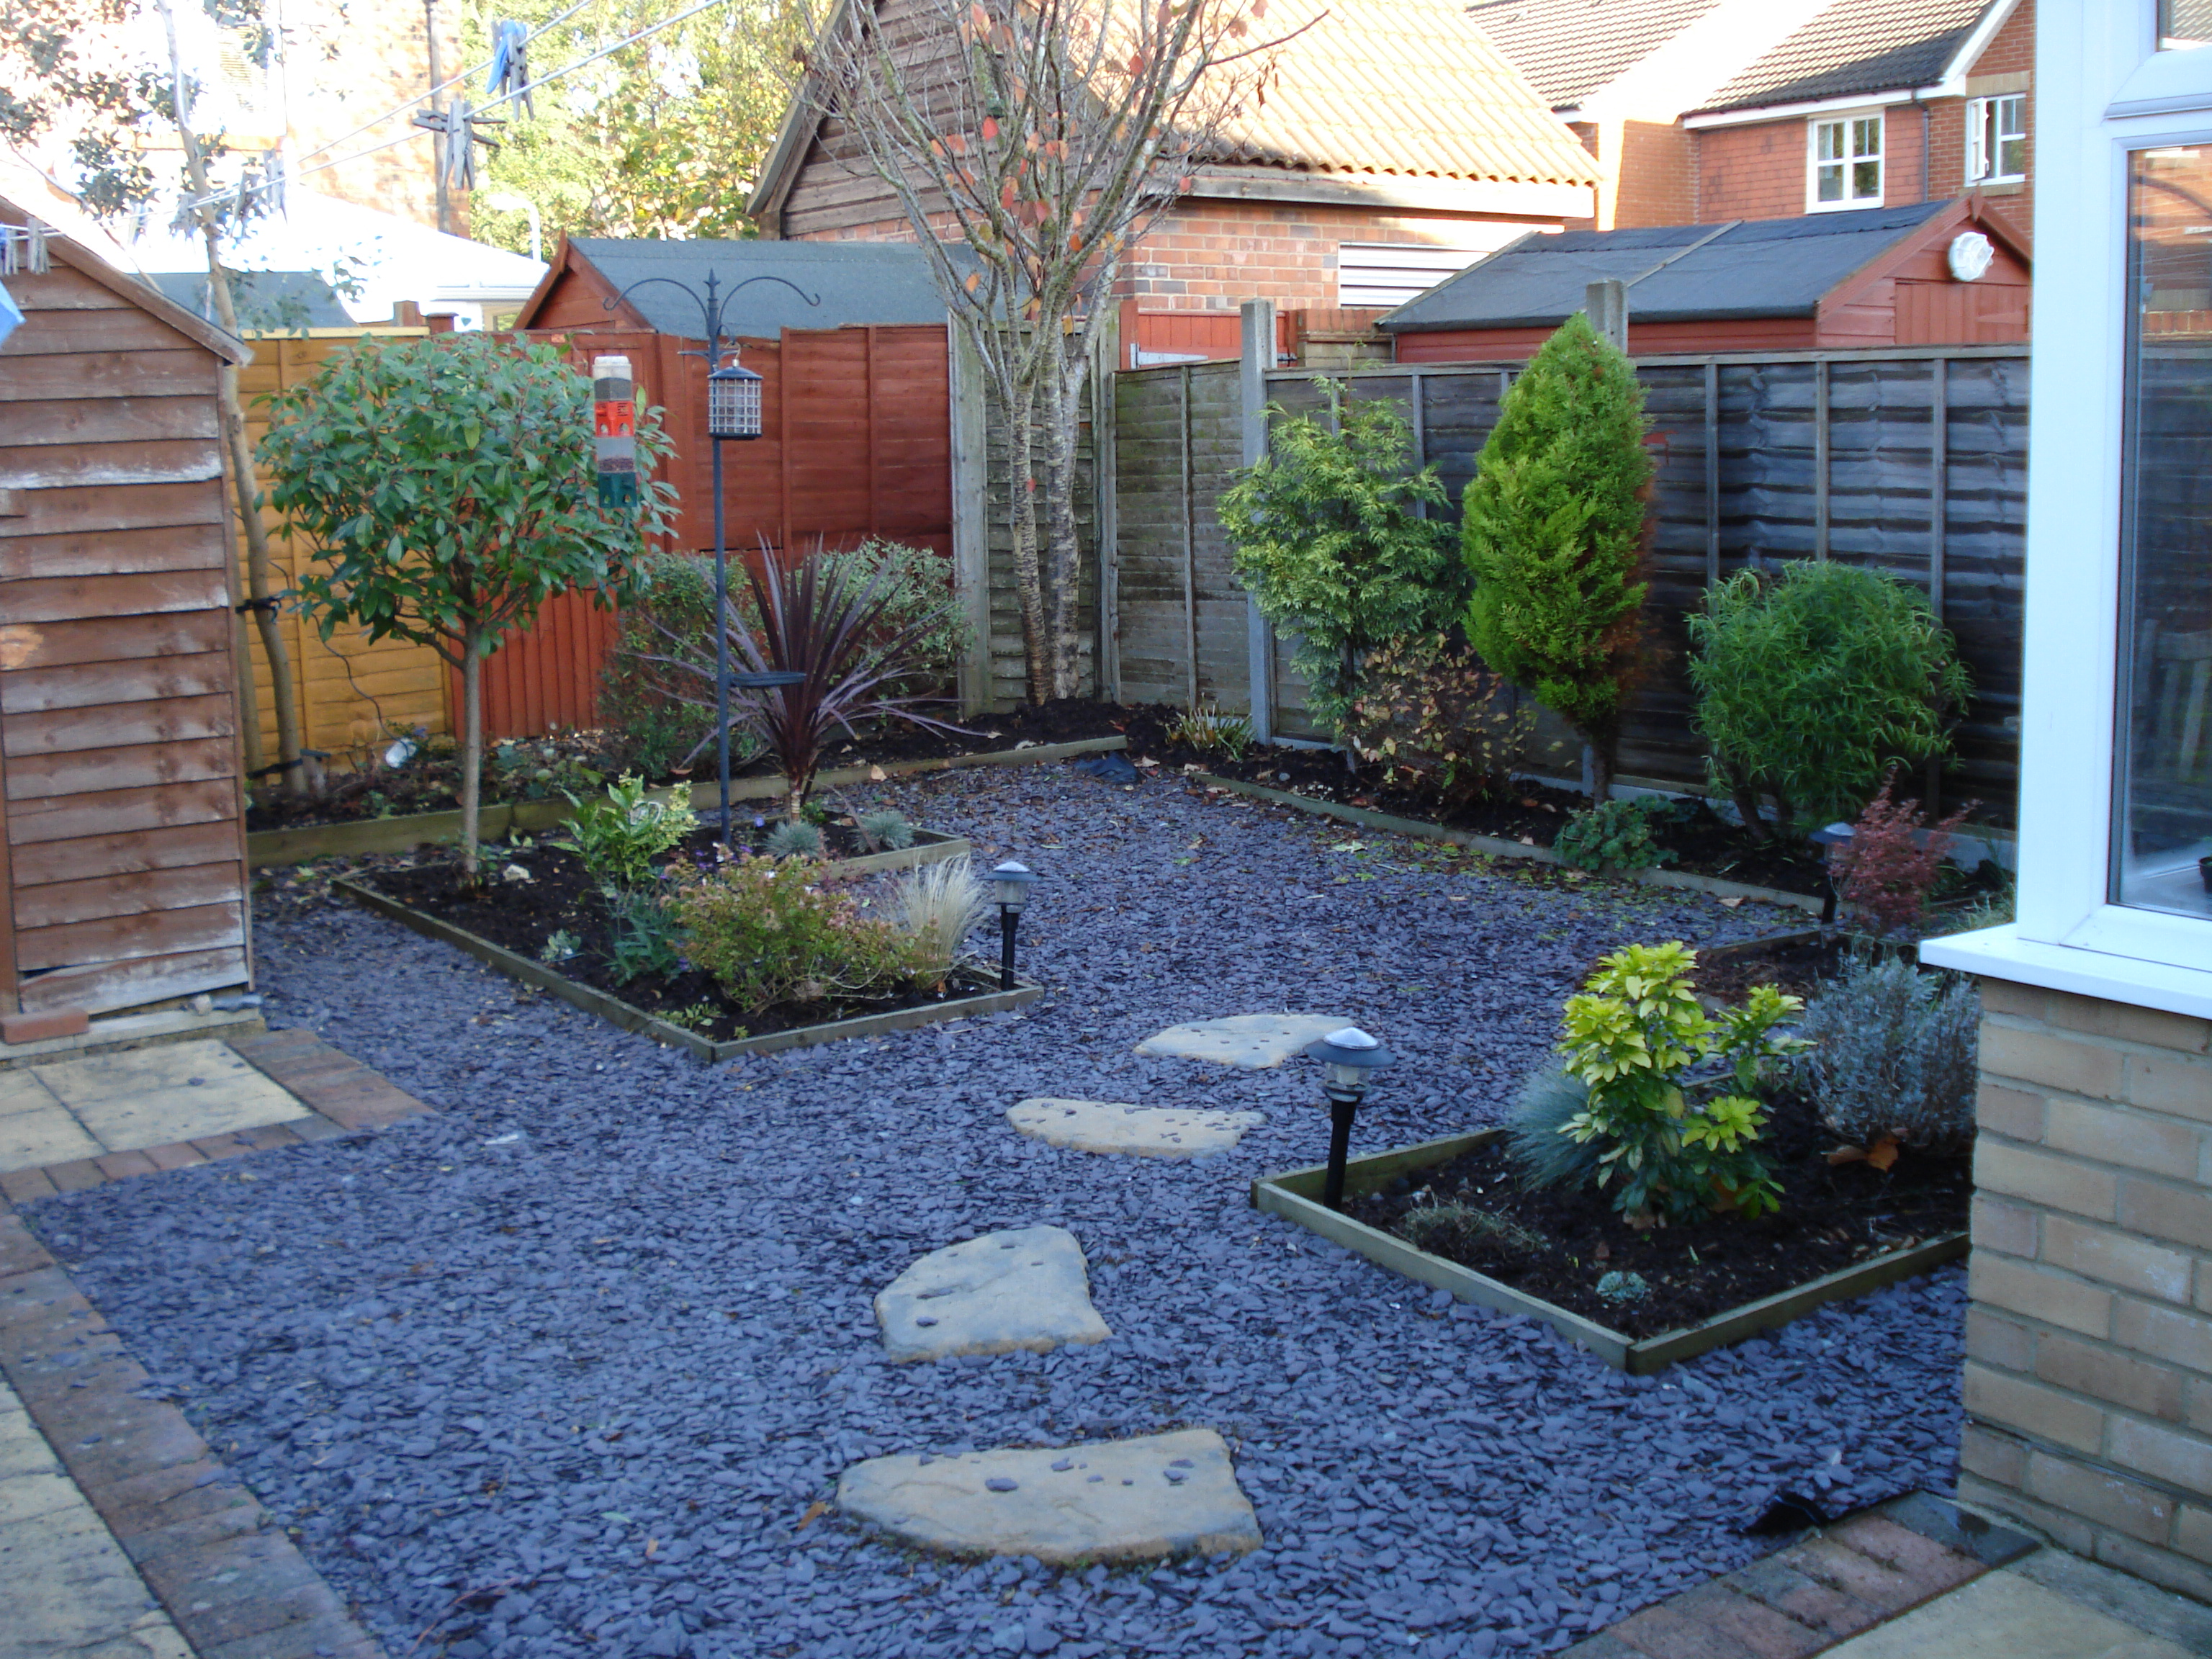 File back garden jpg wikimedia commons for Back garden simple designs